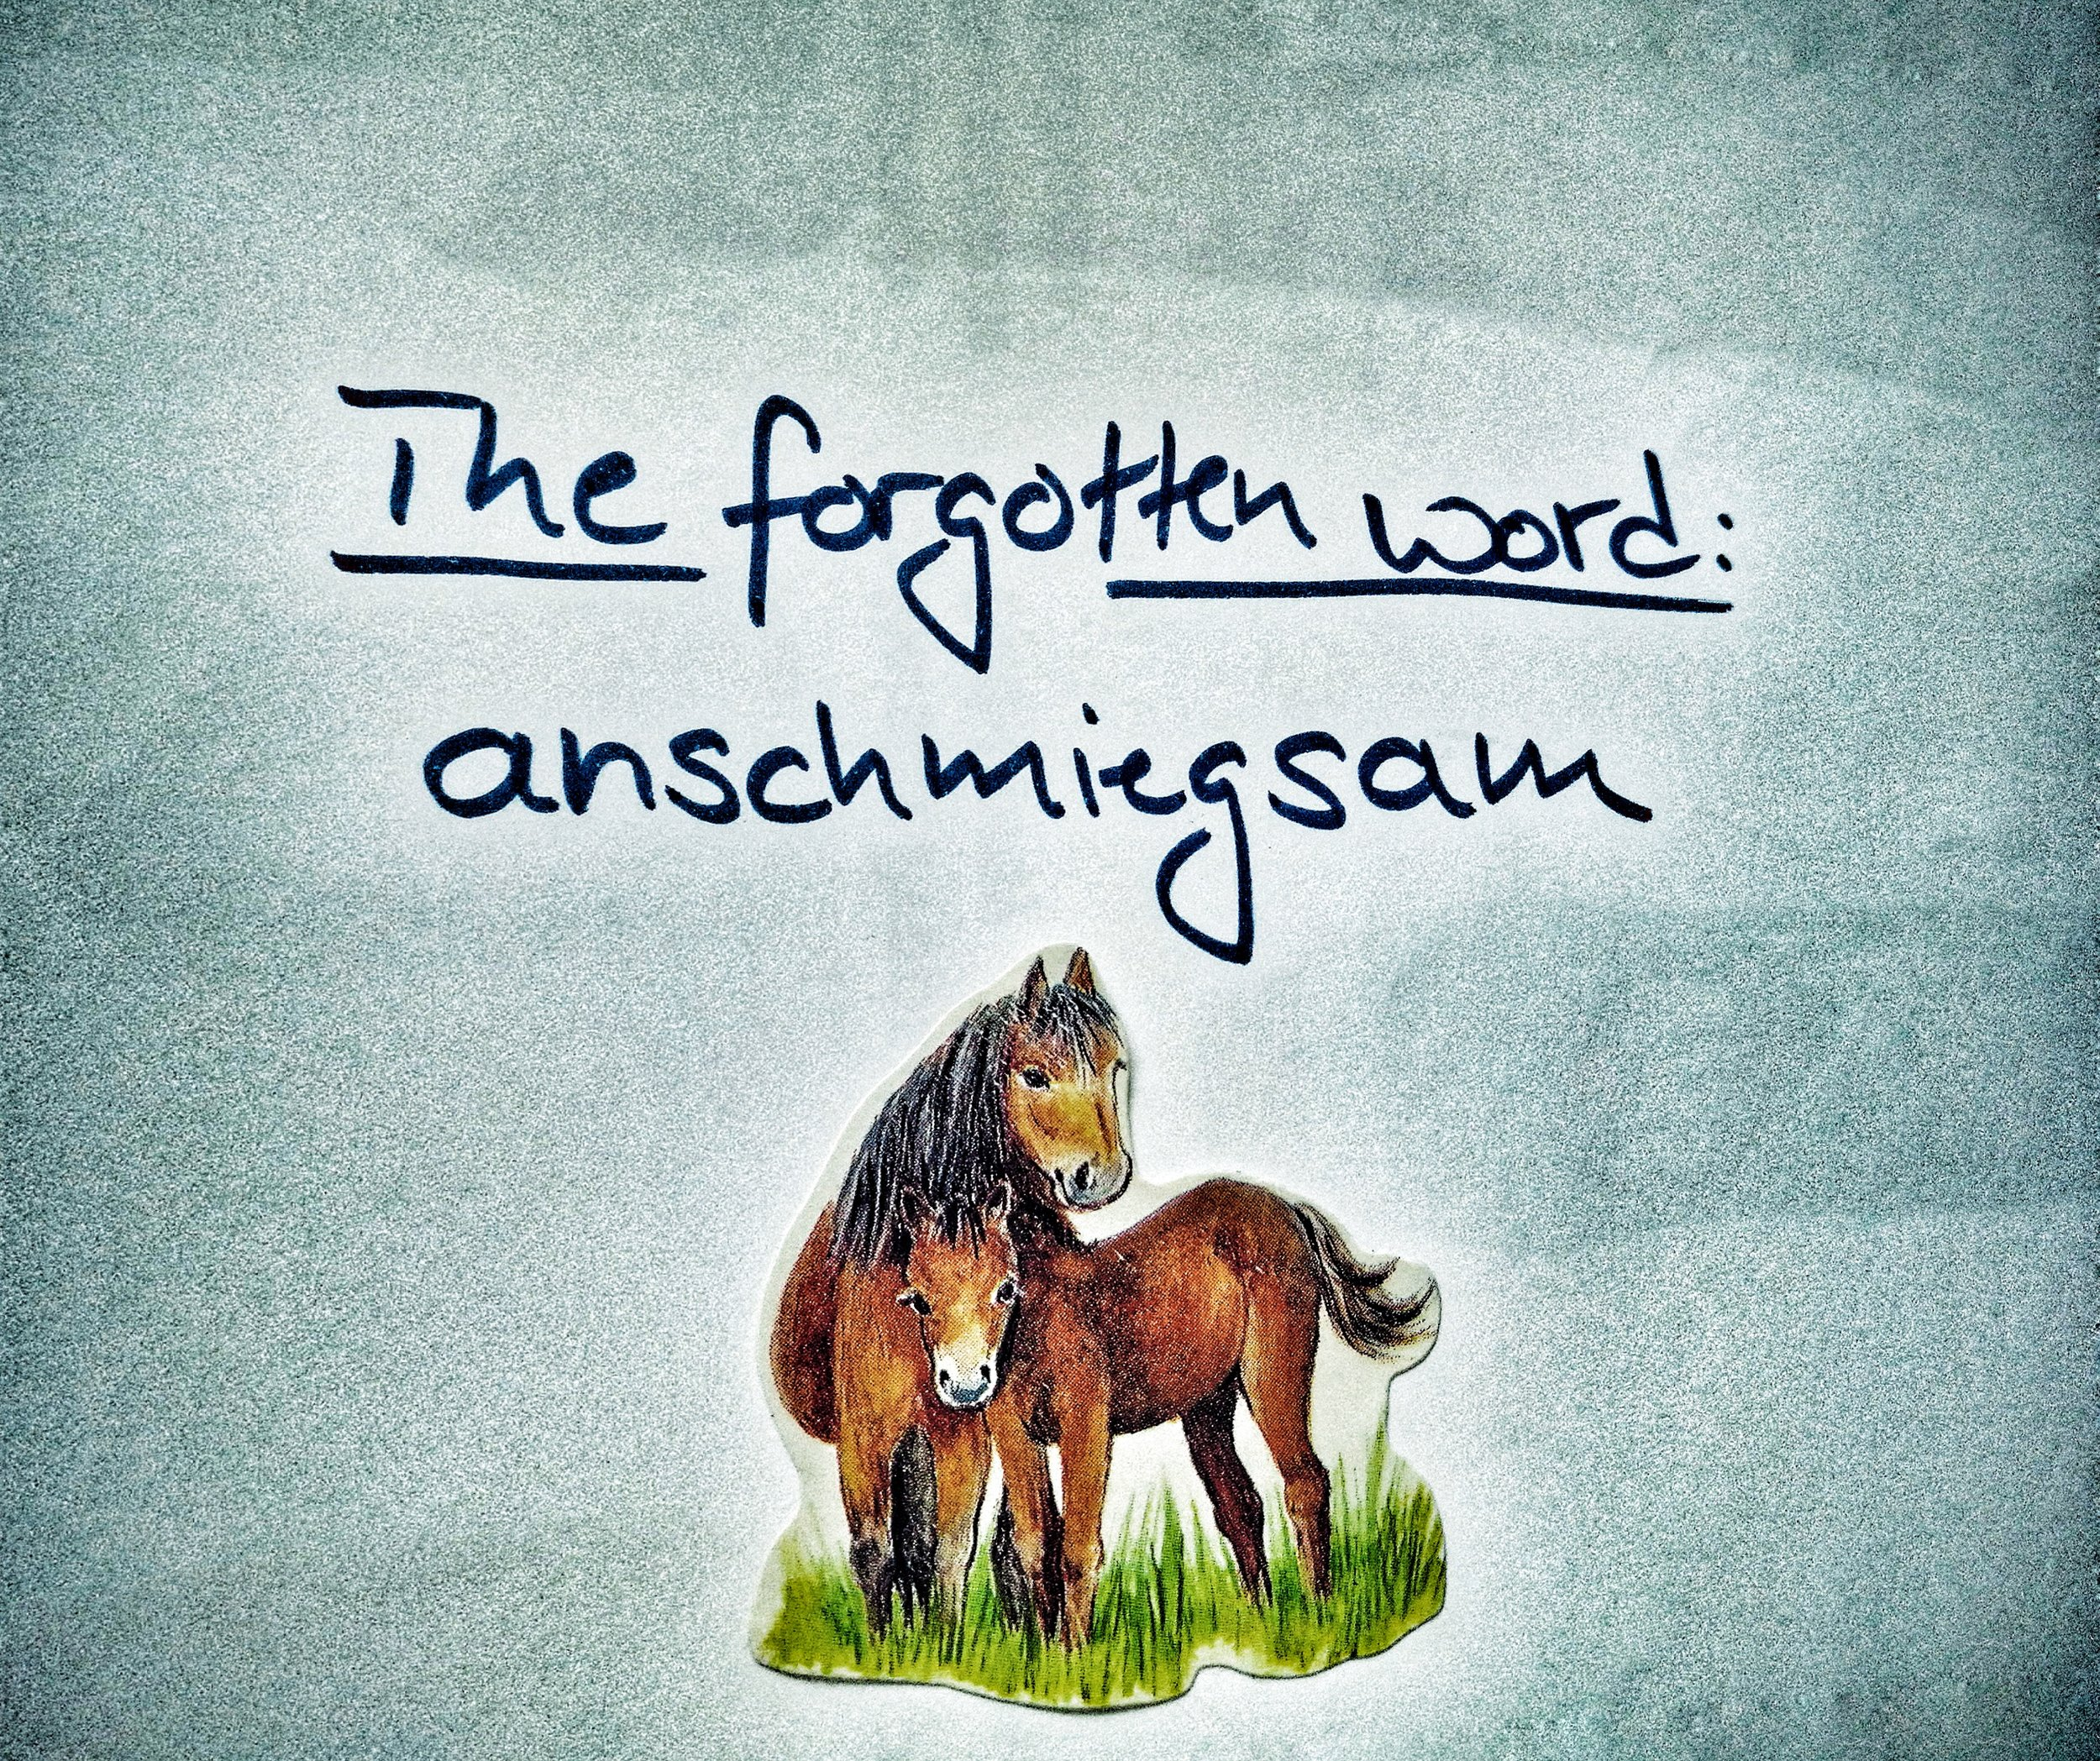 anschmiegsam-Pferde-horses-word-meaning-forgotten-Sprache-cuddly-conformal-soft-to-the-touch-language-Wort